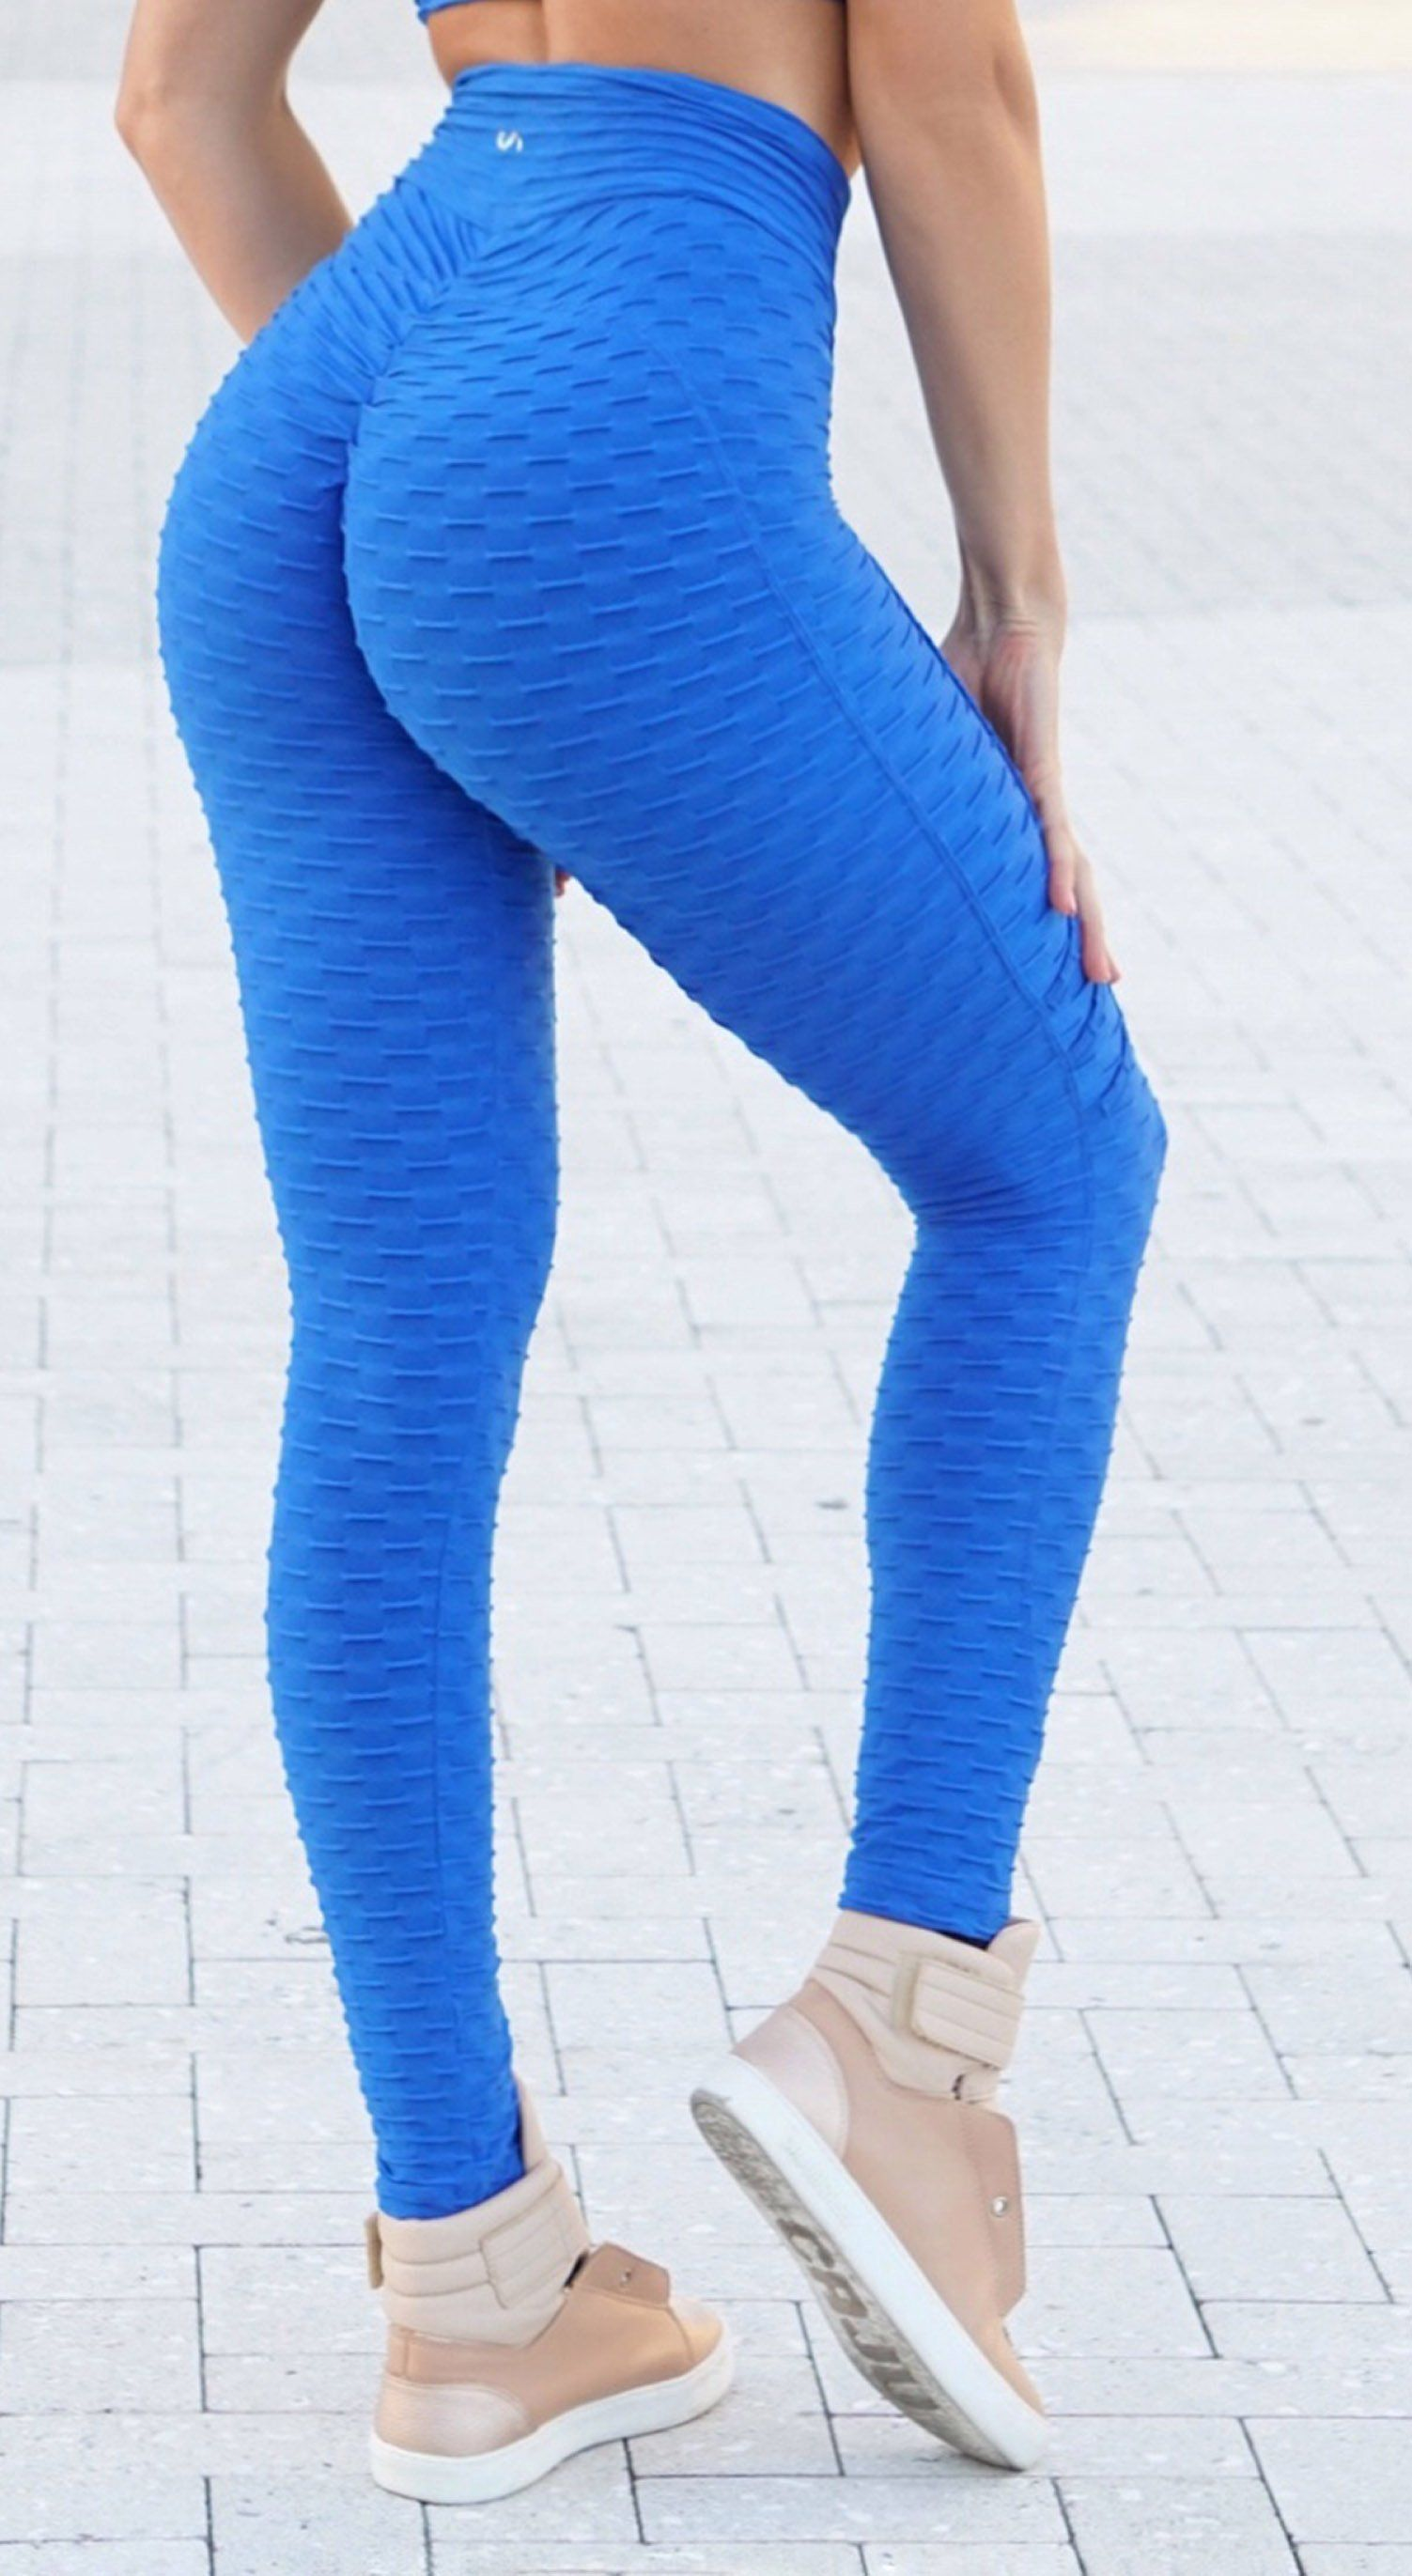 Brazilian Legging - High Waist Anti Cellulite Ultimate Booty Up Effect Royal Blue